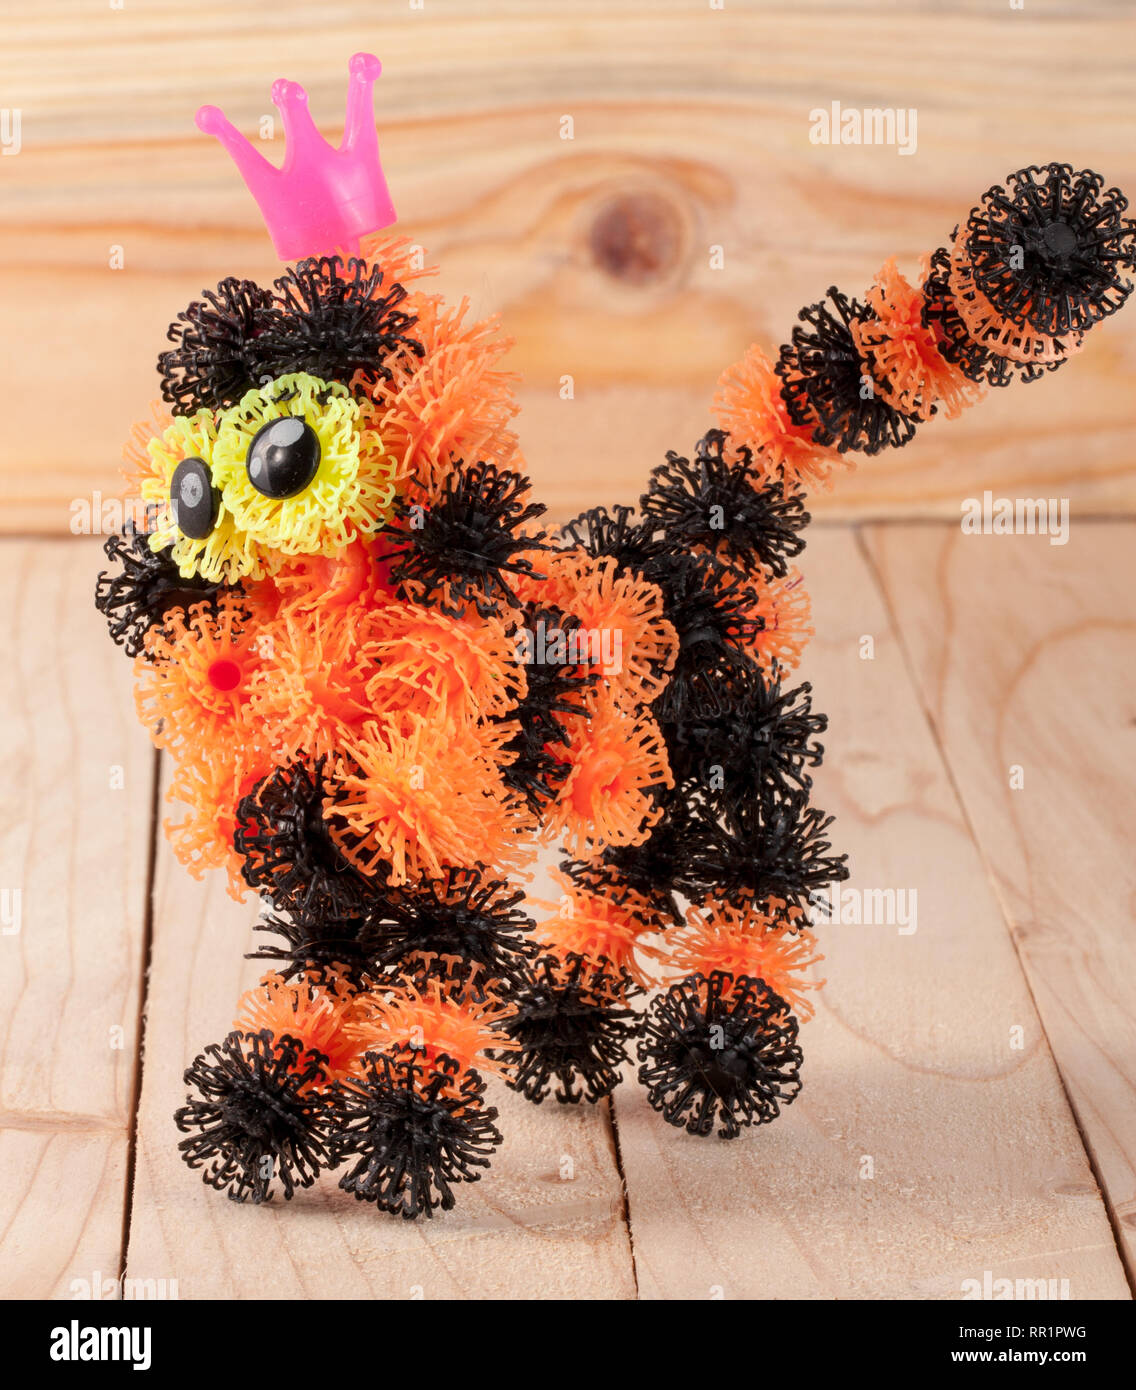 tiger from elements of children's designer of Velcro on a wooden background - Stock Image